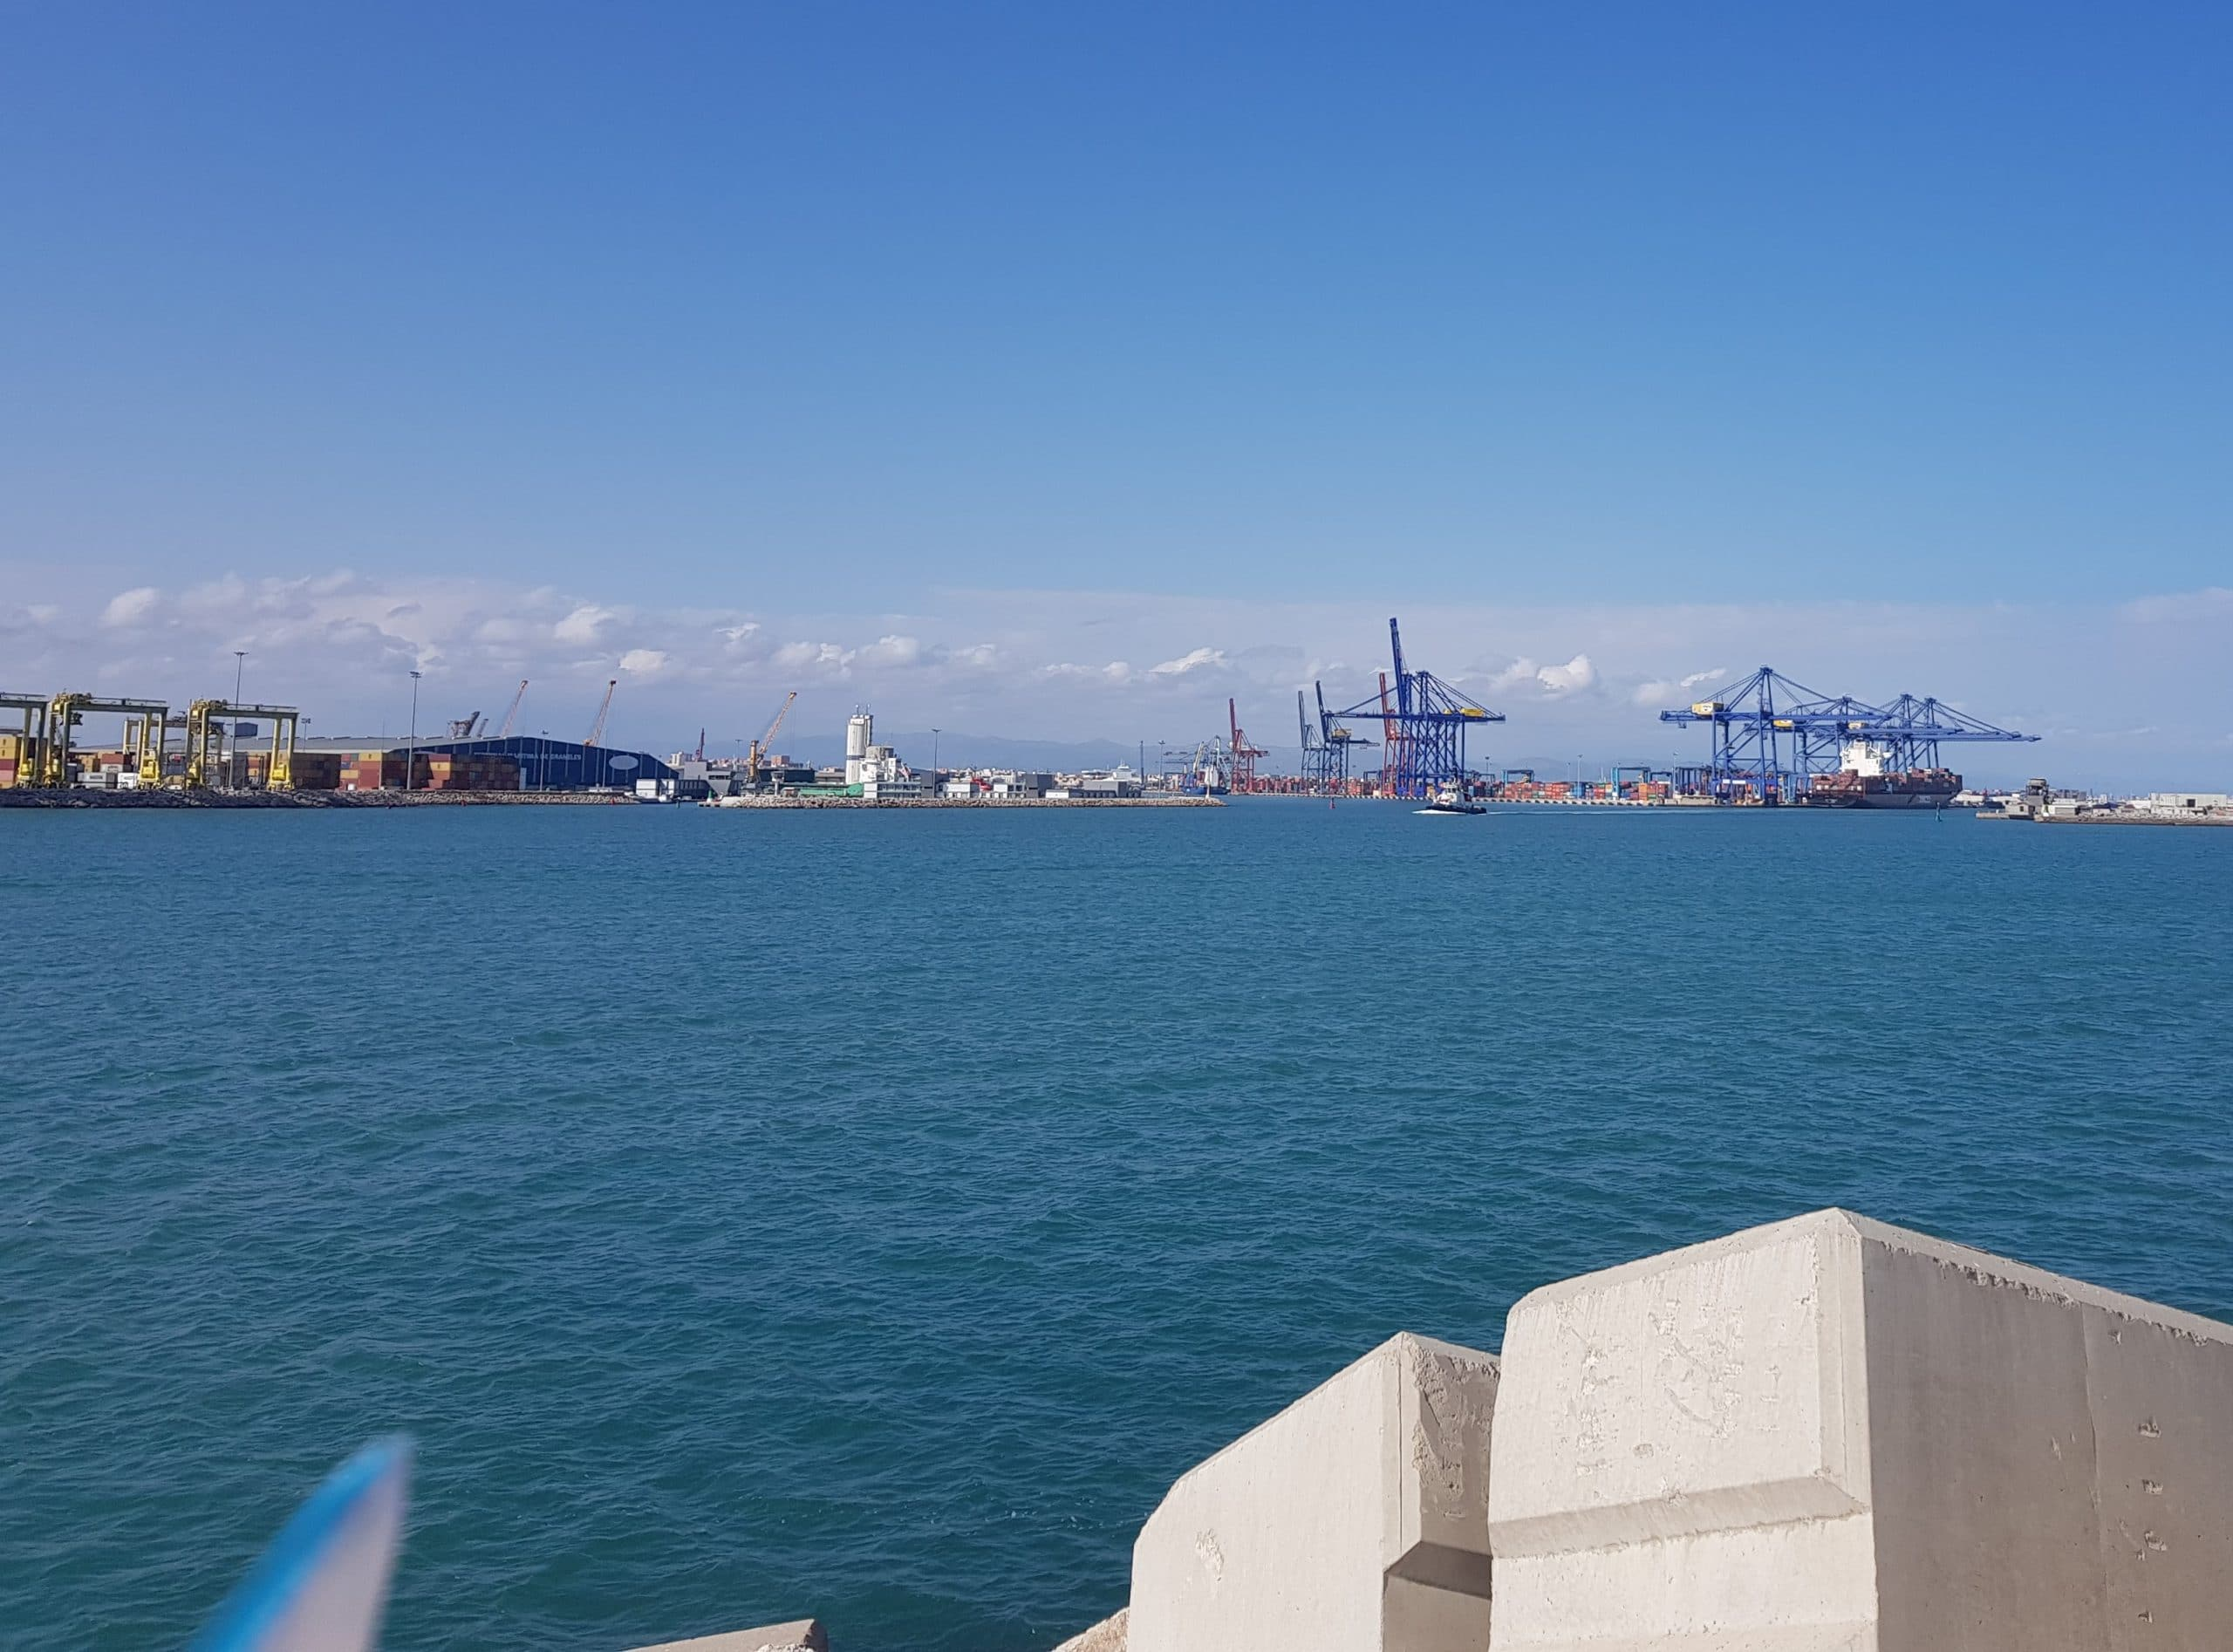 New Container Terminal Feasibility Study Valencia Port